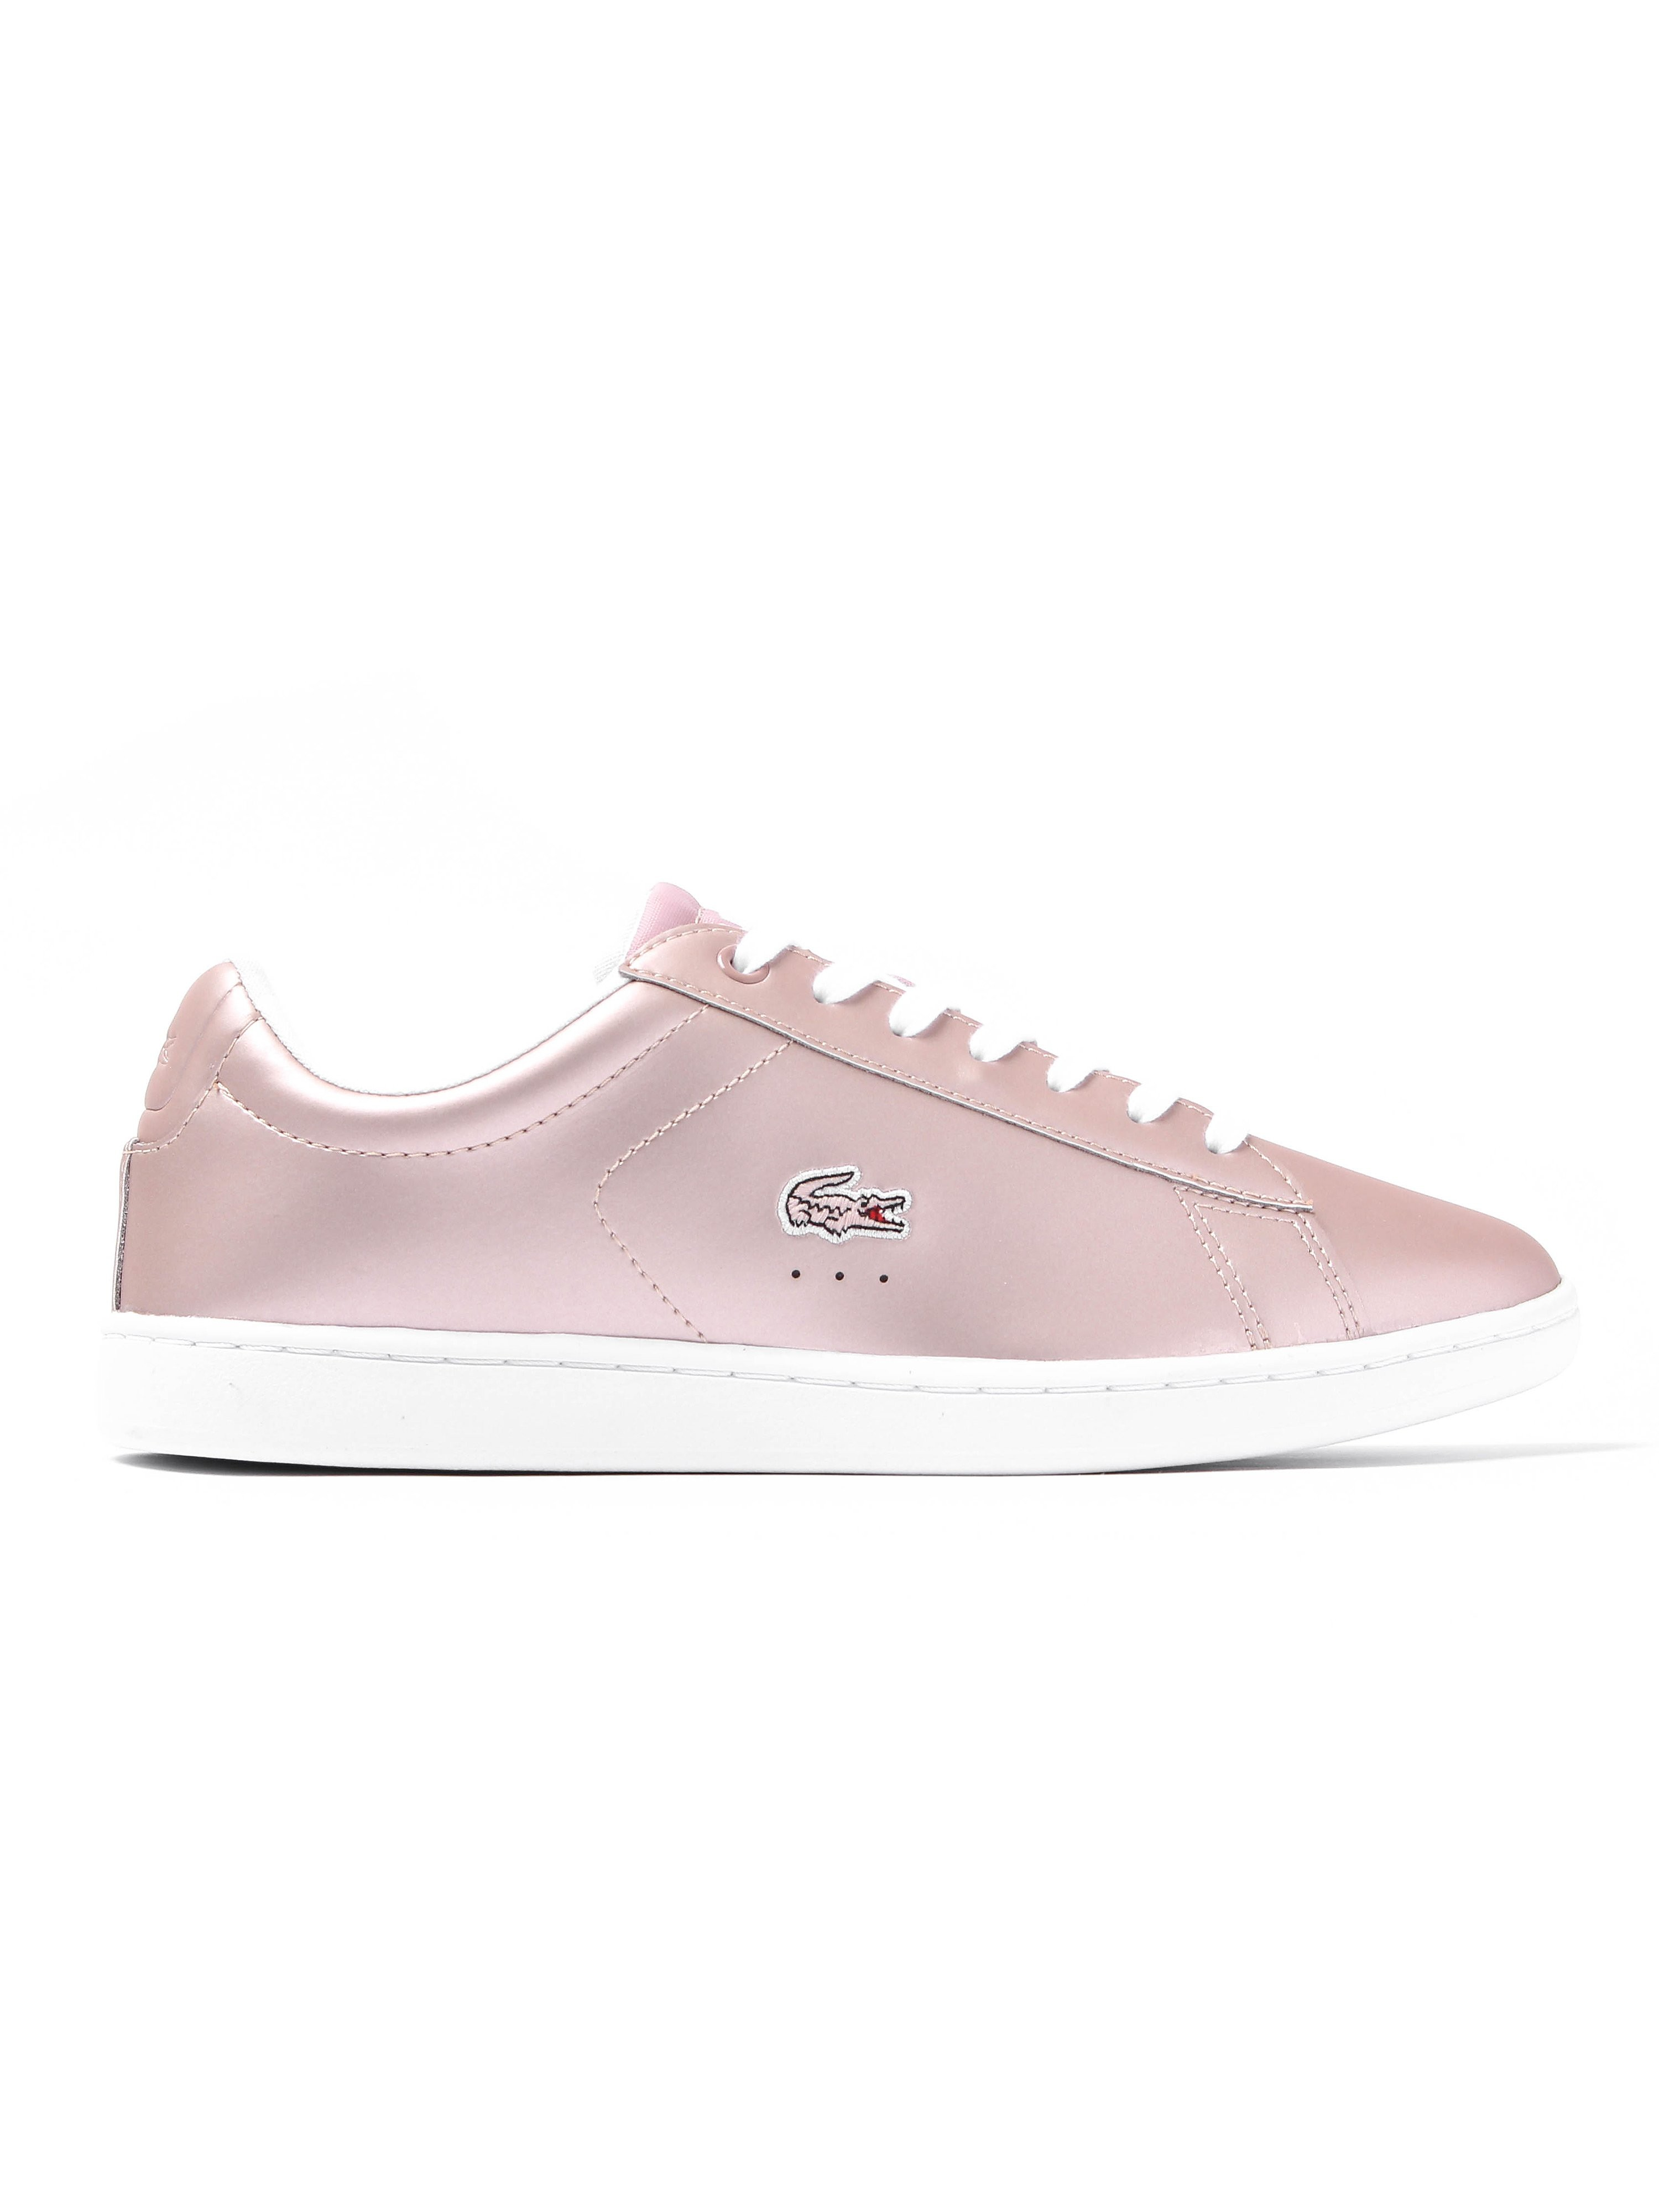 Lacoste Women's Carnavy EVO 117 3 Leather Trainers - Metallic Pink